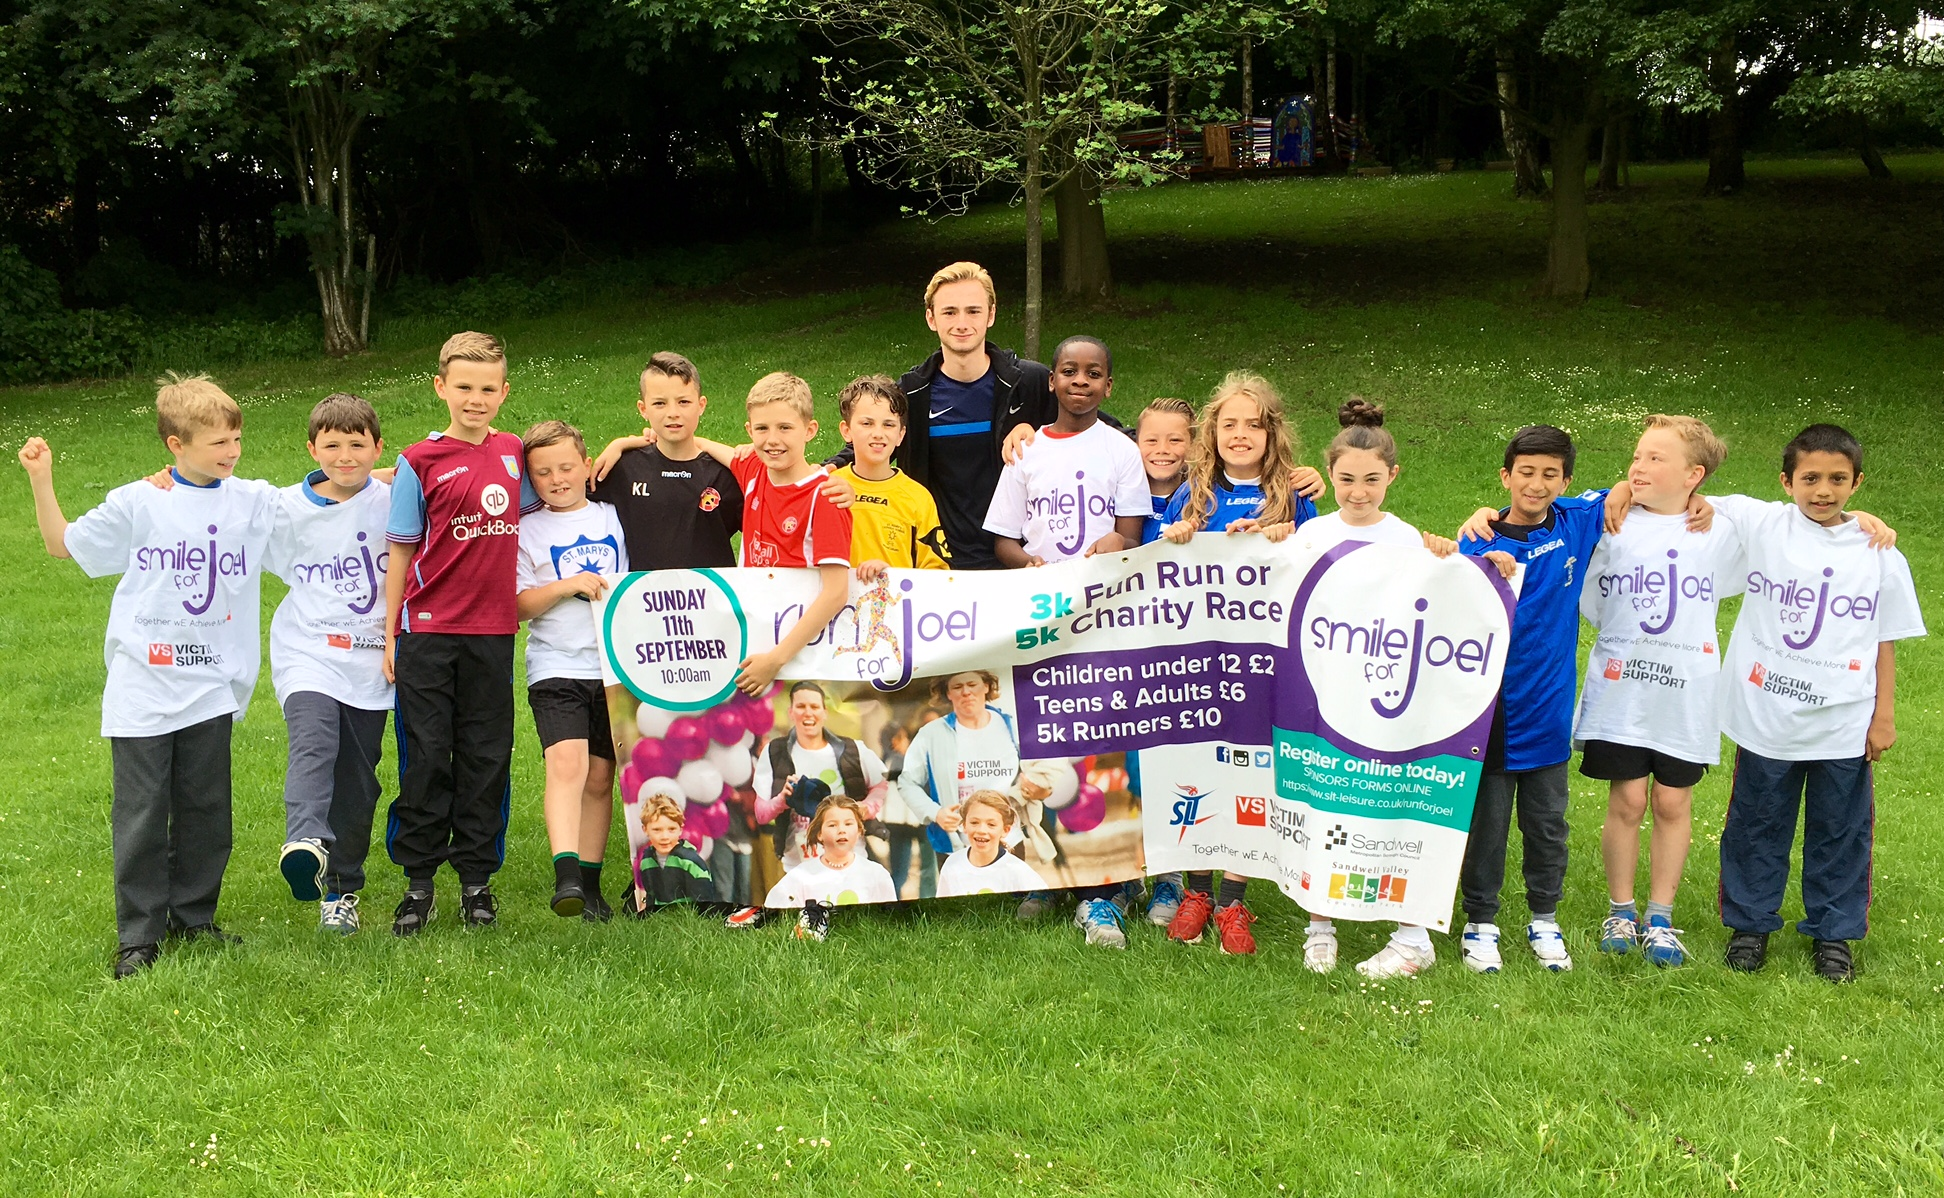 Showing off our banner for the 2016 RunforJoel Charity Fun Run and Marathon